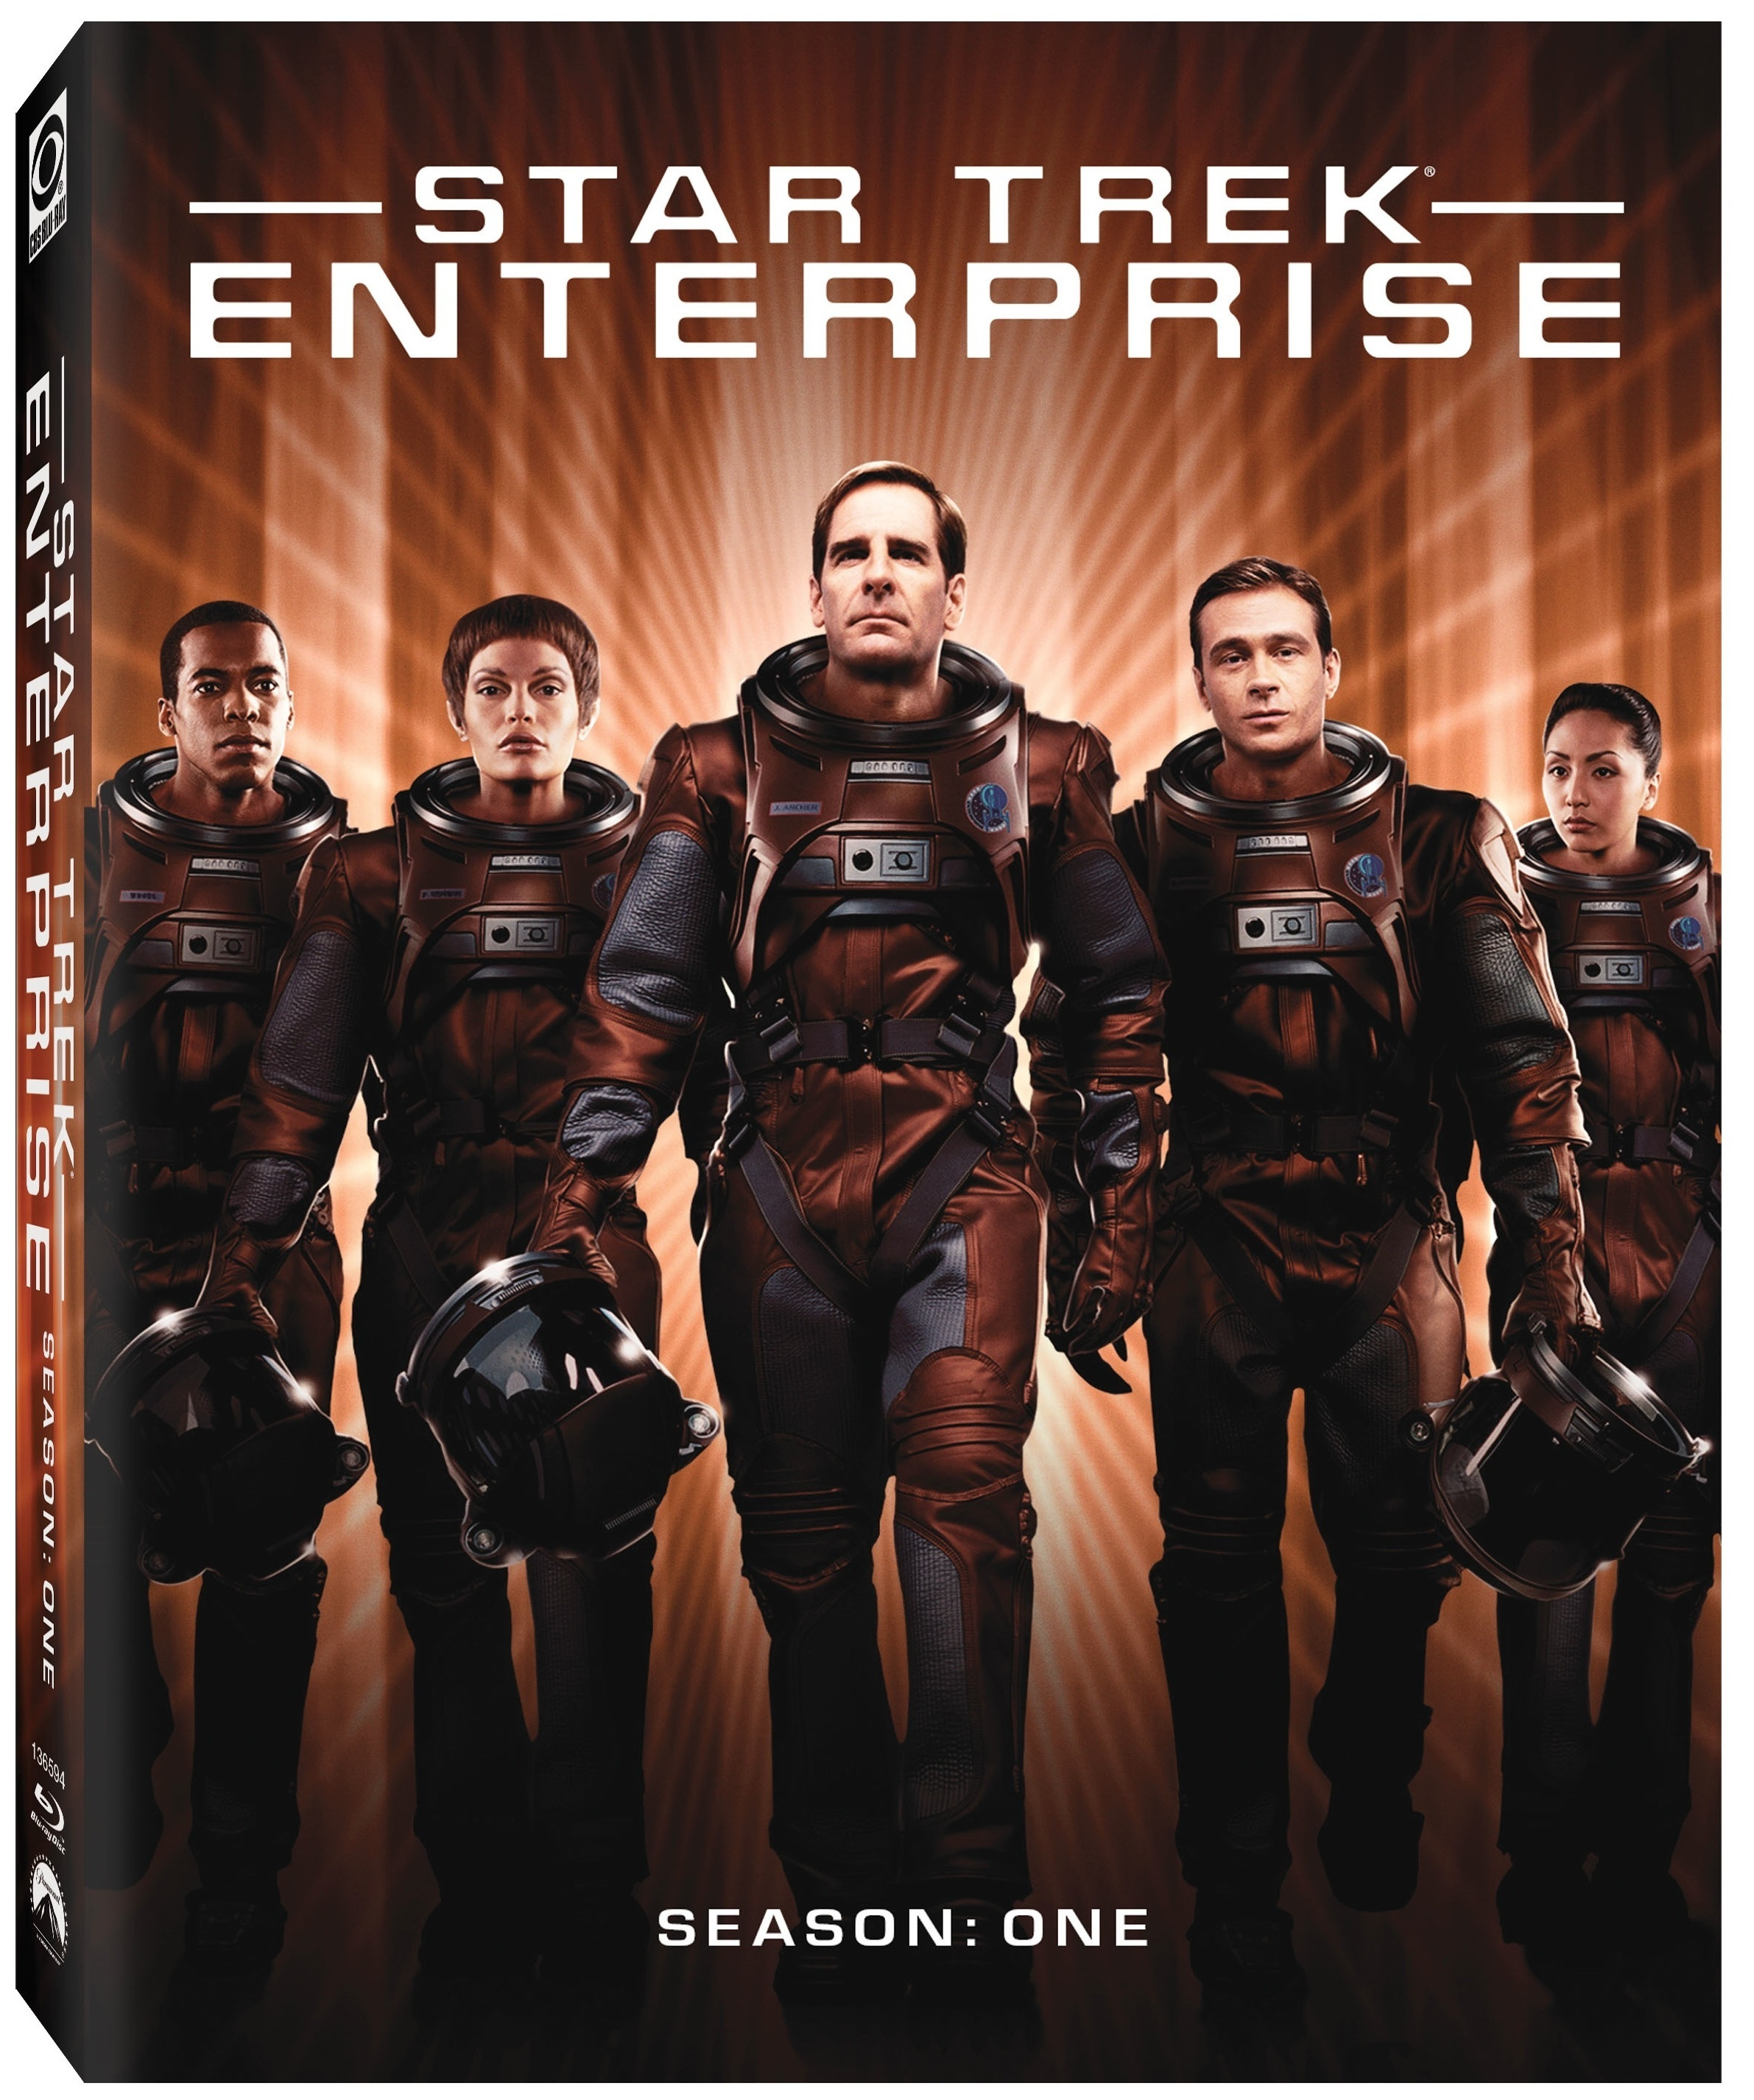 Star Trek Enterprise season 1 Blu-ray cover - Jolene Blalock as T'pol - Scott Bakula as Jonathan Archer